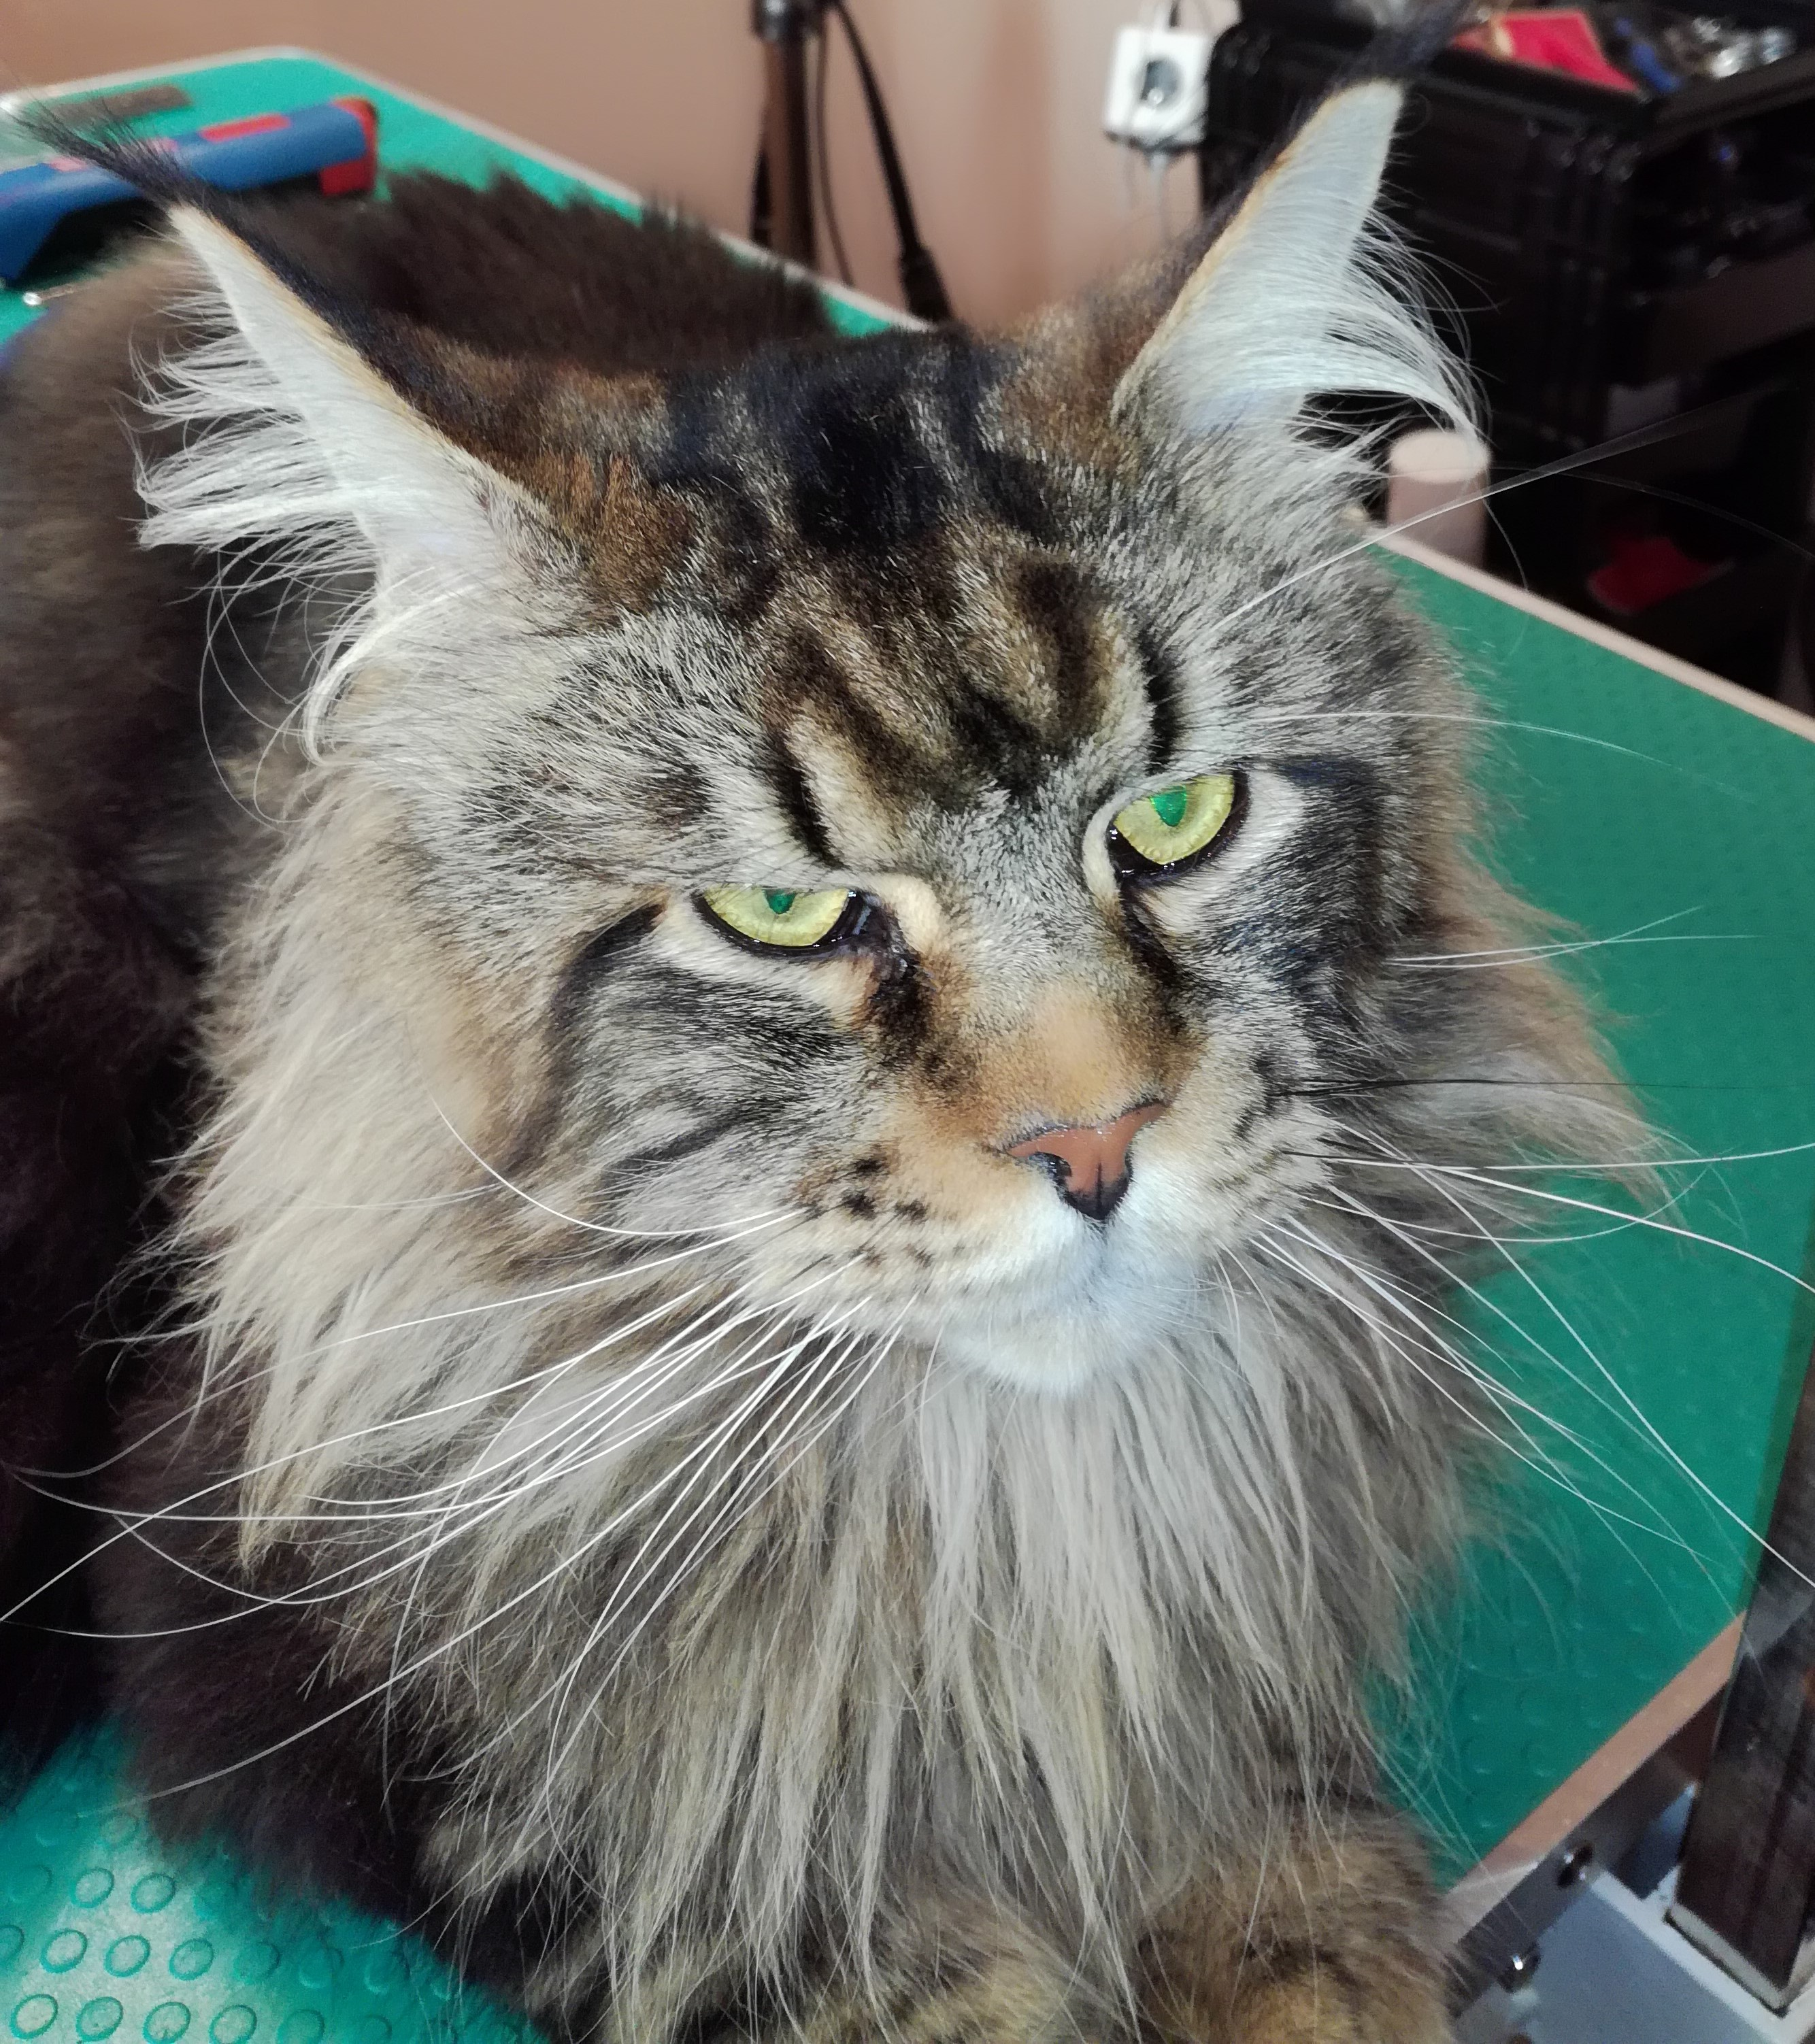 maincoon - Copie